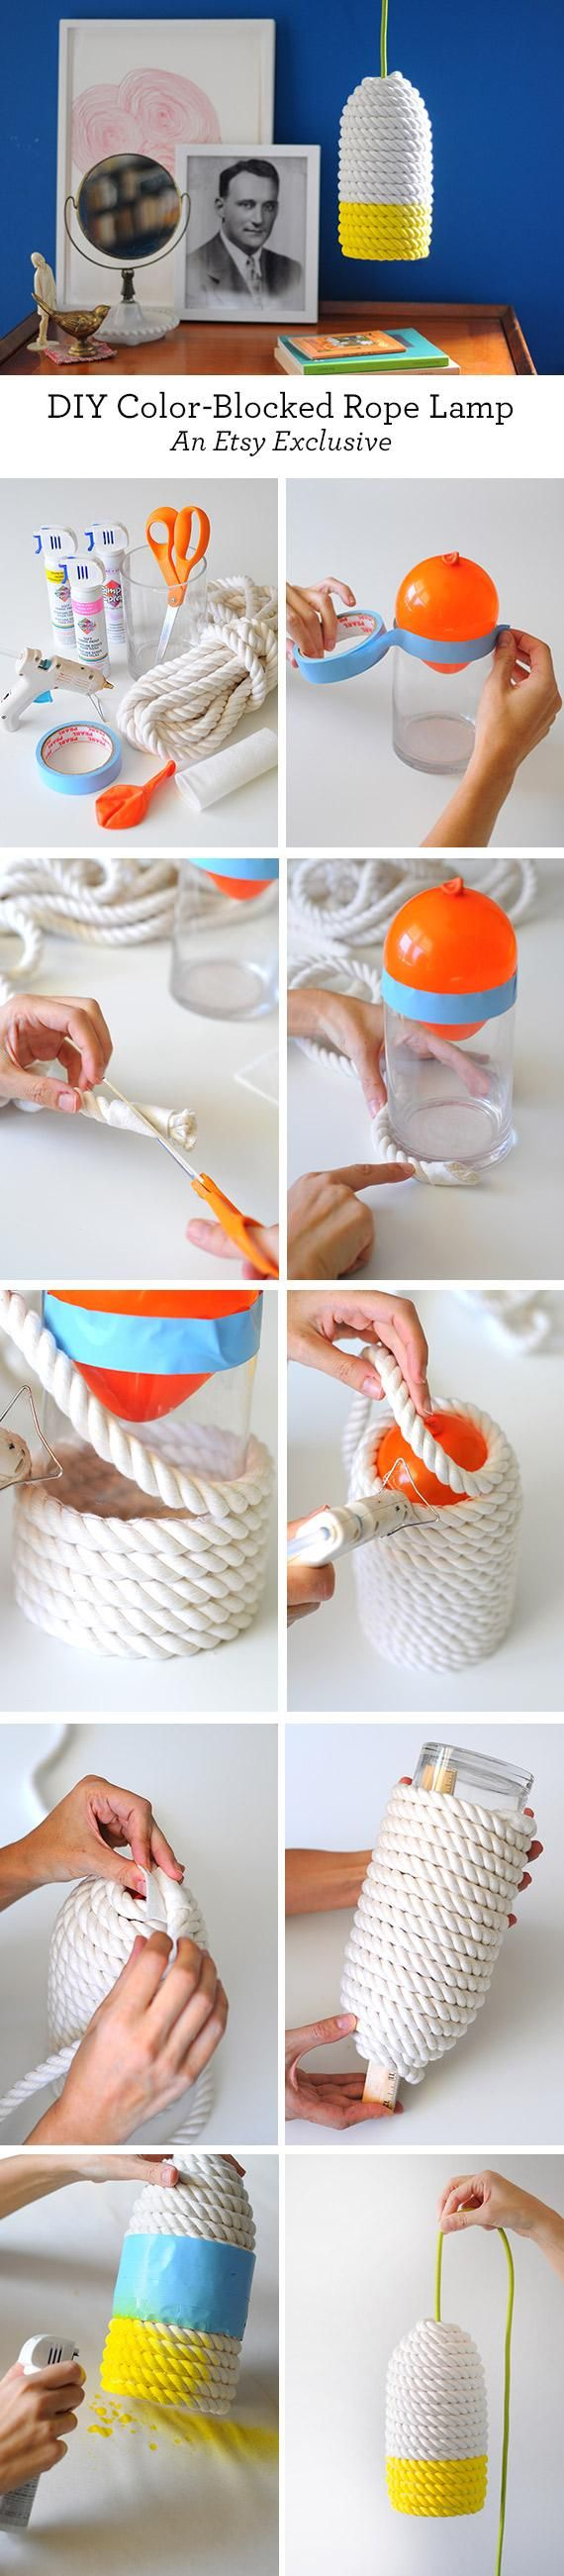 DIY Lampe aus Seil mit Colour Blocking. Pendelleuchte selbst machen, Hängeleuchte basteln https://blog.etsy.com/en/2015/craft-a-colorful-rope-lampshade/?utm_campaign=Merch&utm_medium=Internal&utm_source=Pinterest